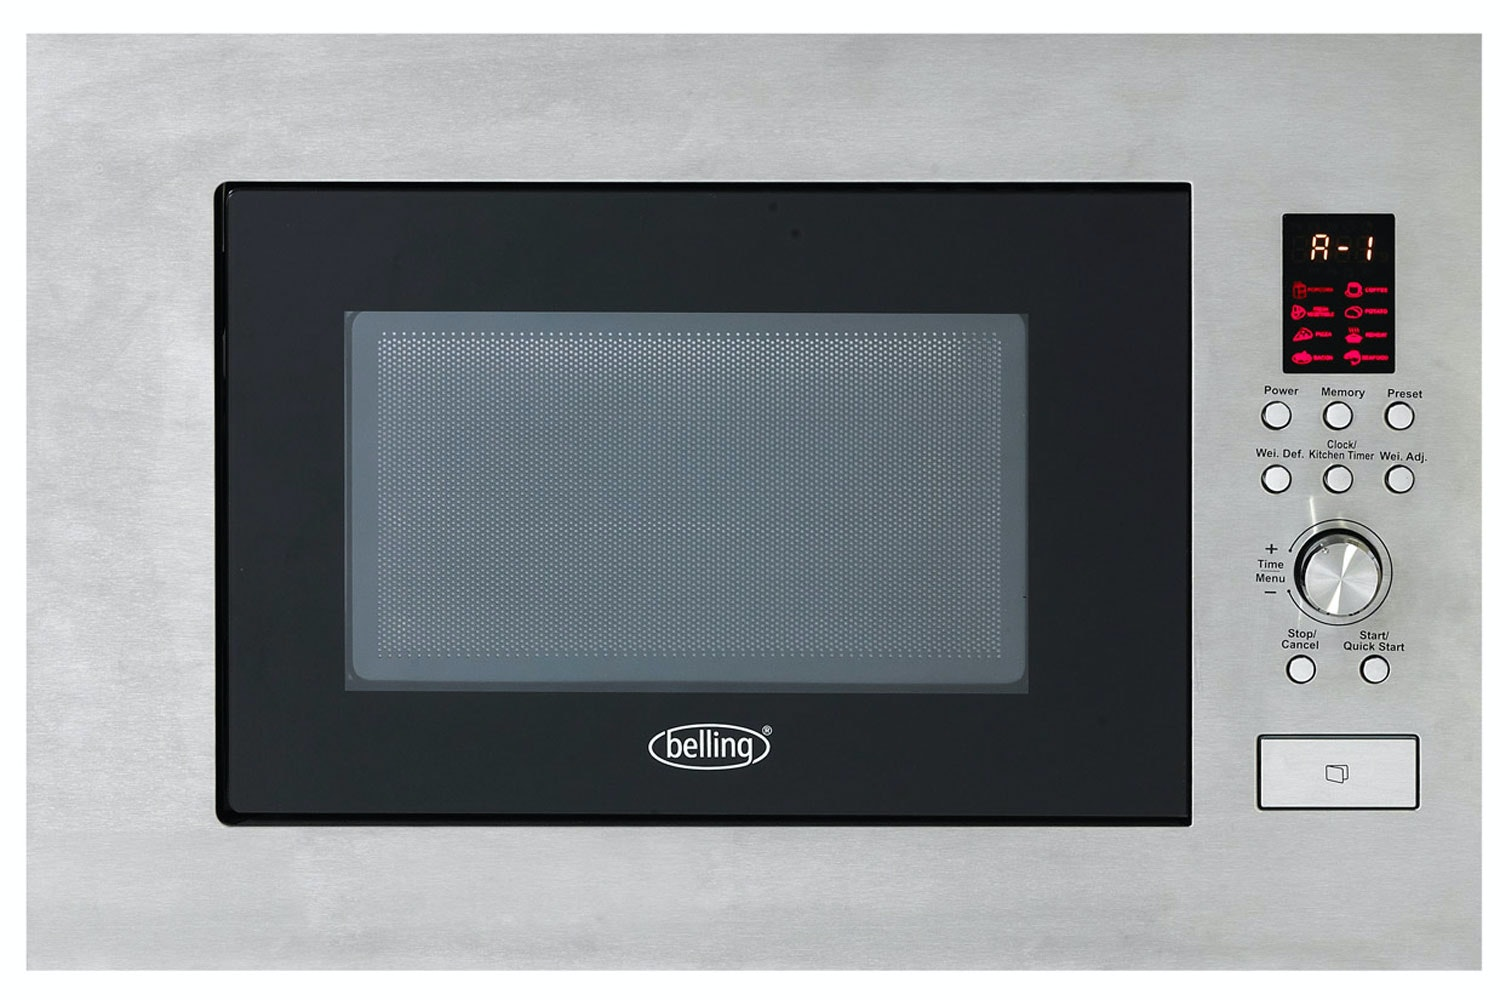 Belling Built-in Microwave | Stainless Steel